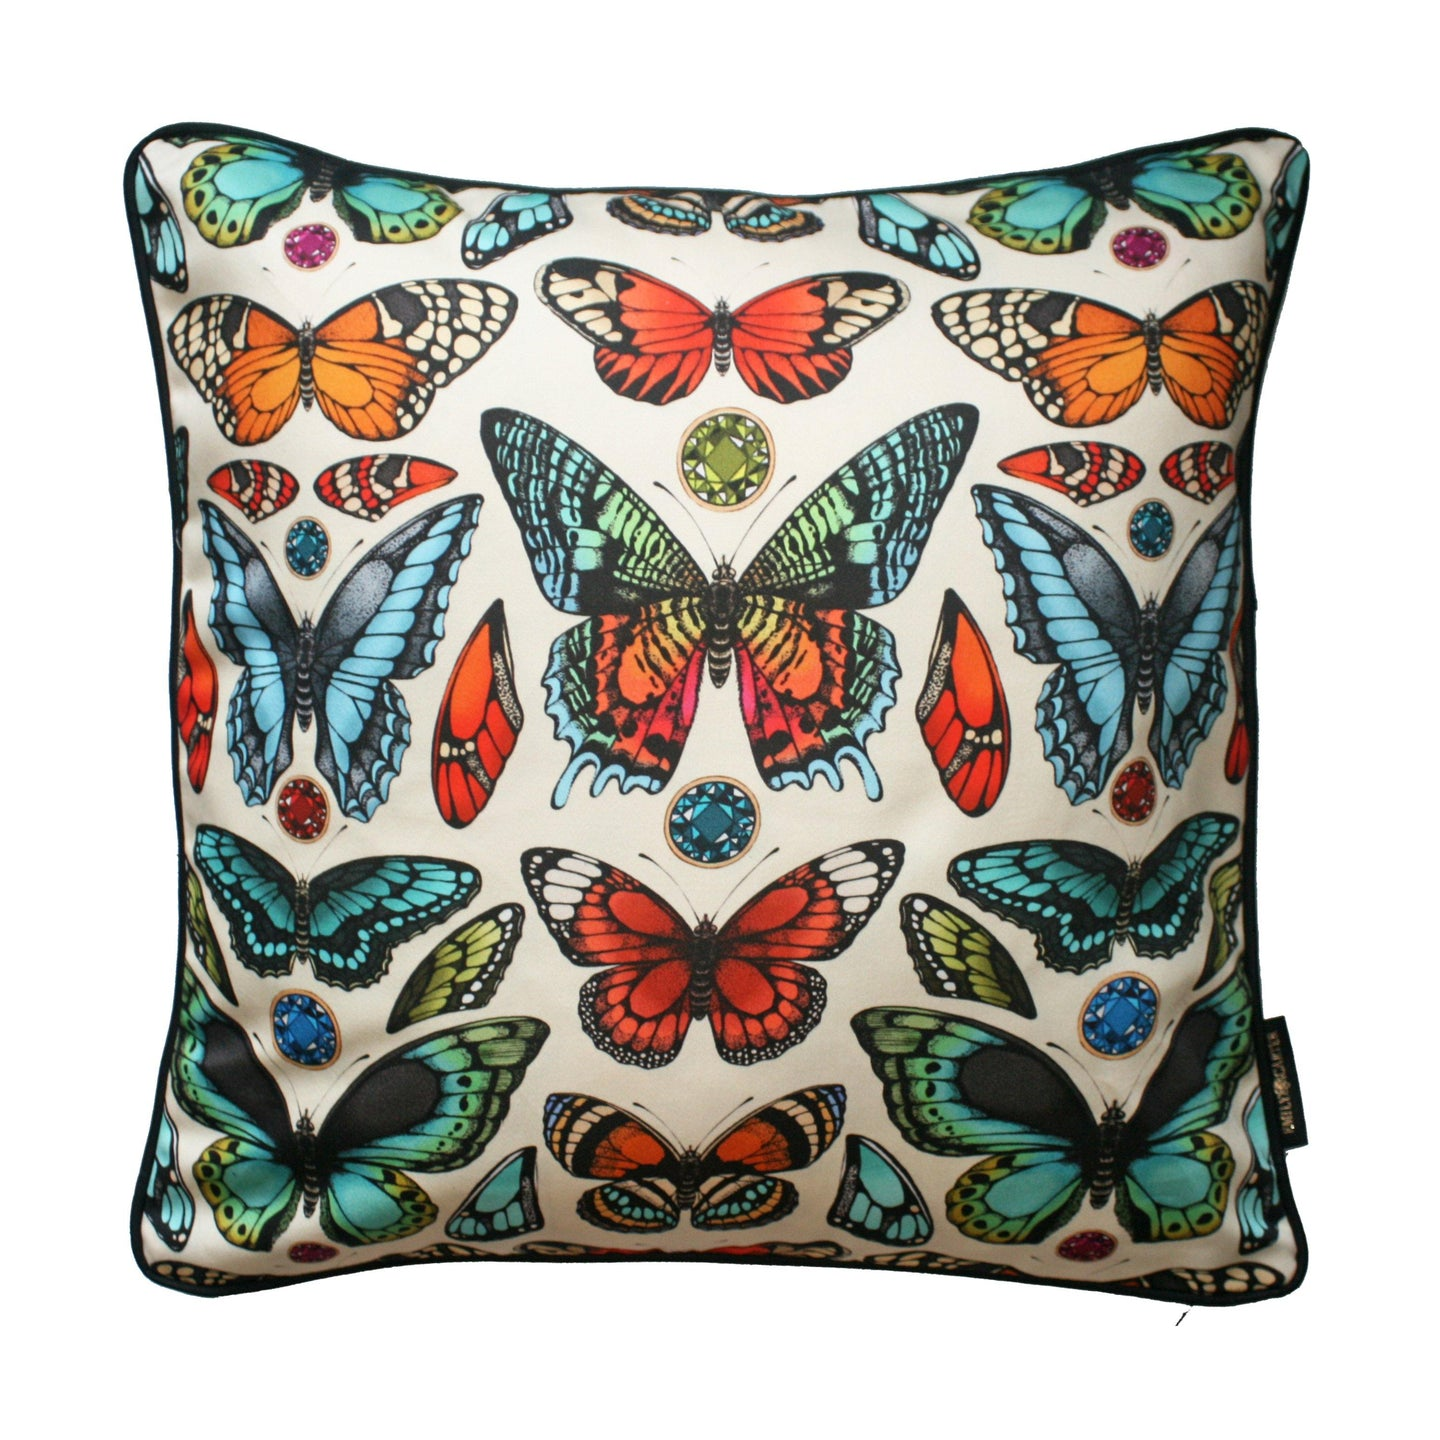 The Tropical Butterfly Cushion | 45x45cm - Emily Carter London